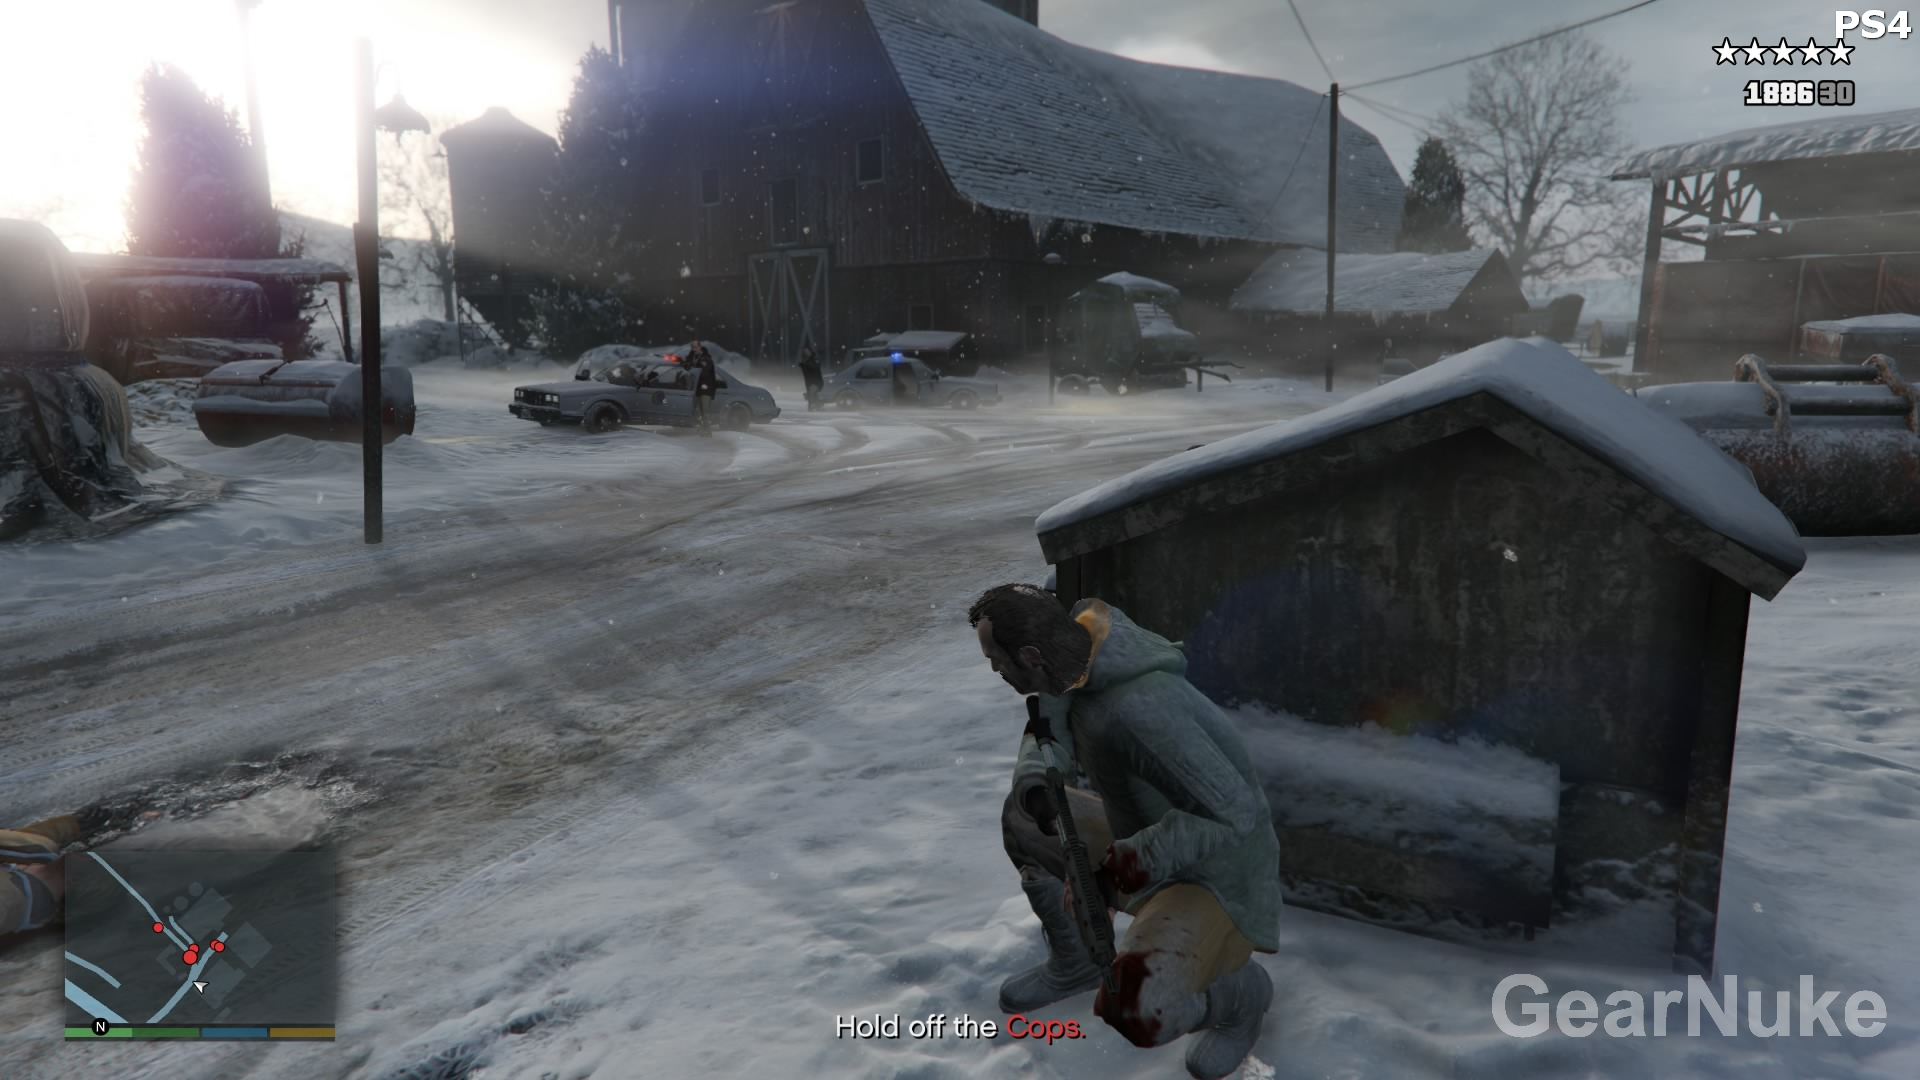 how to change brightness on gta ps4